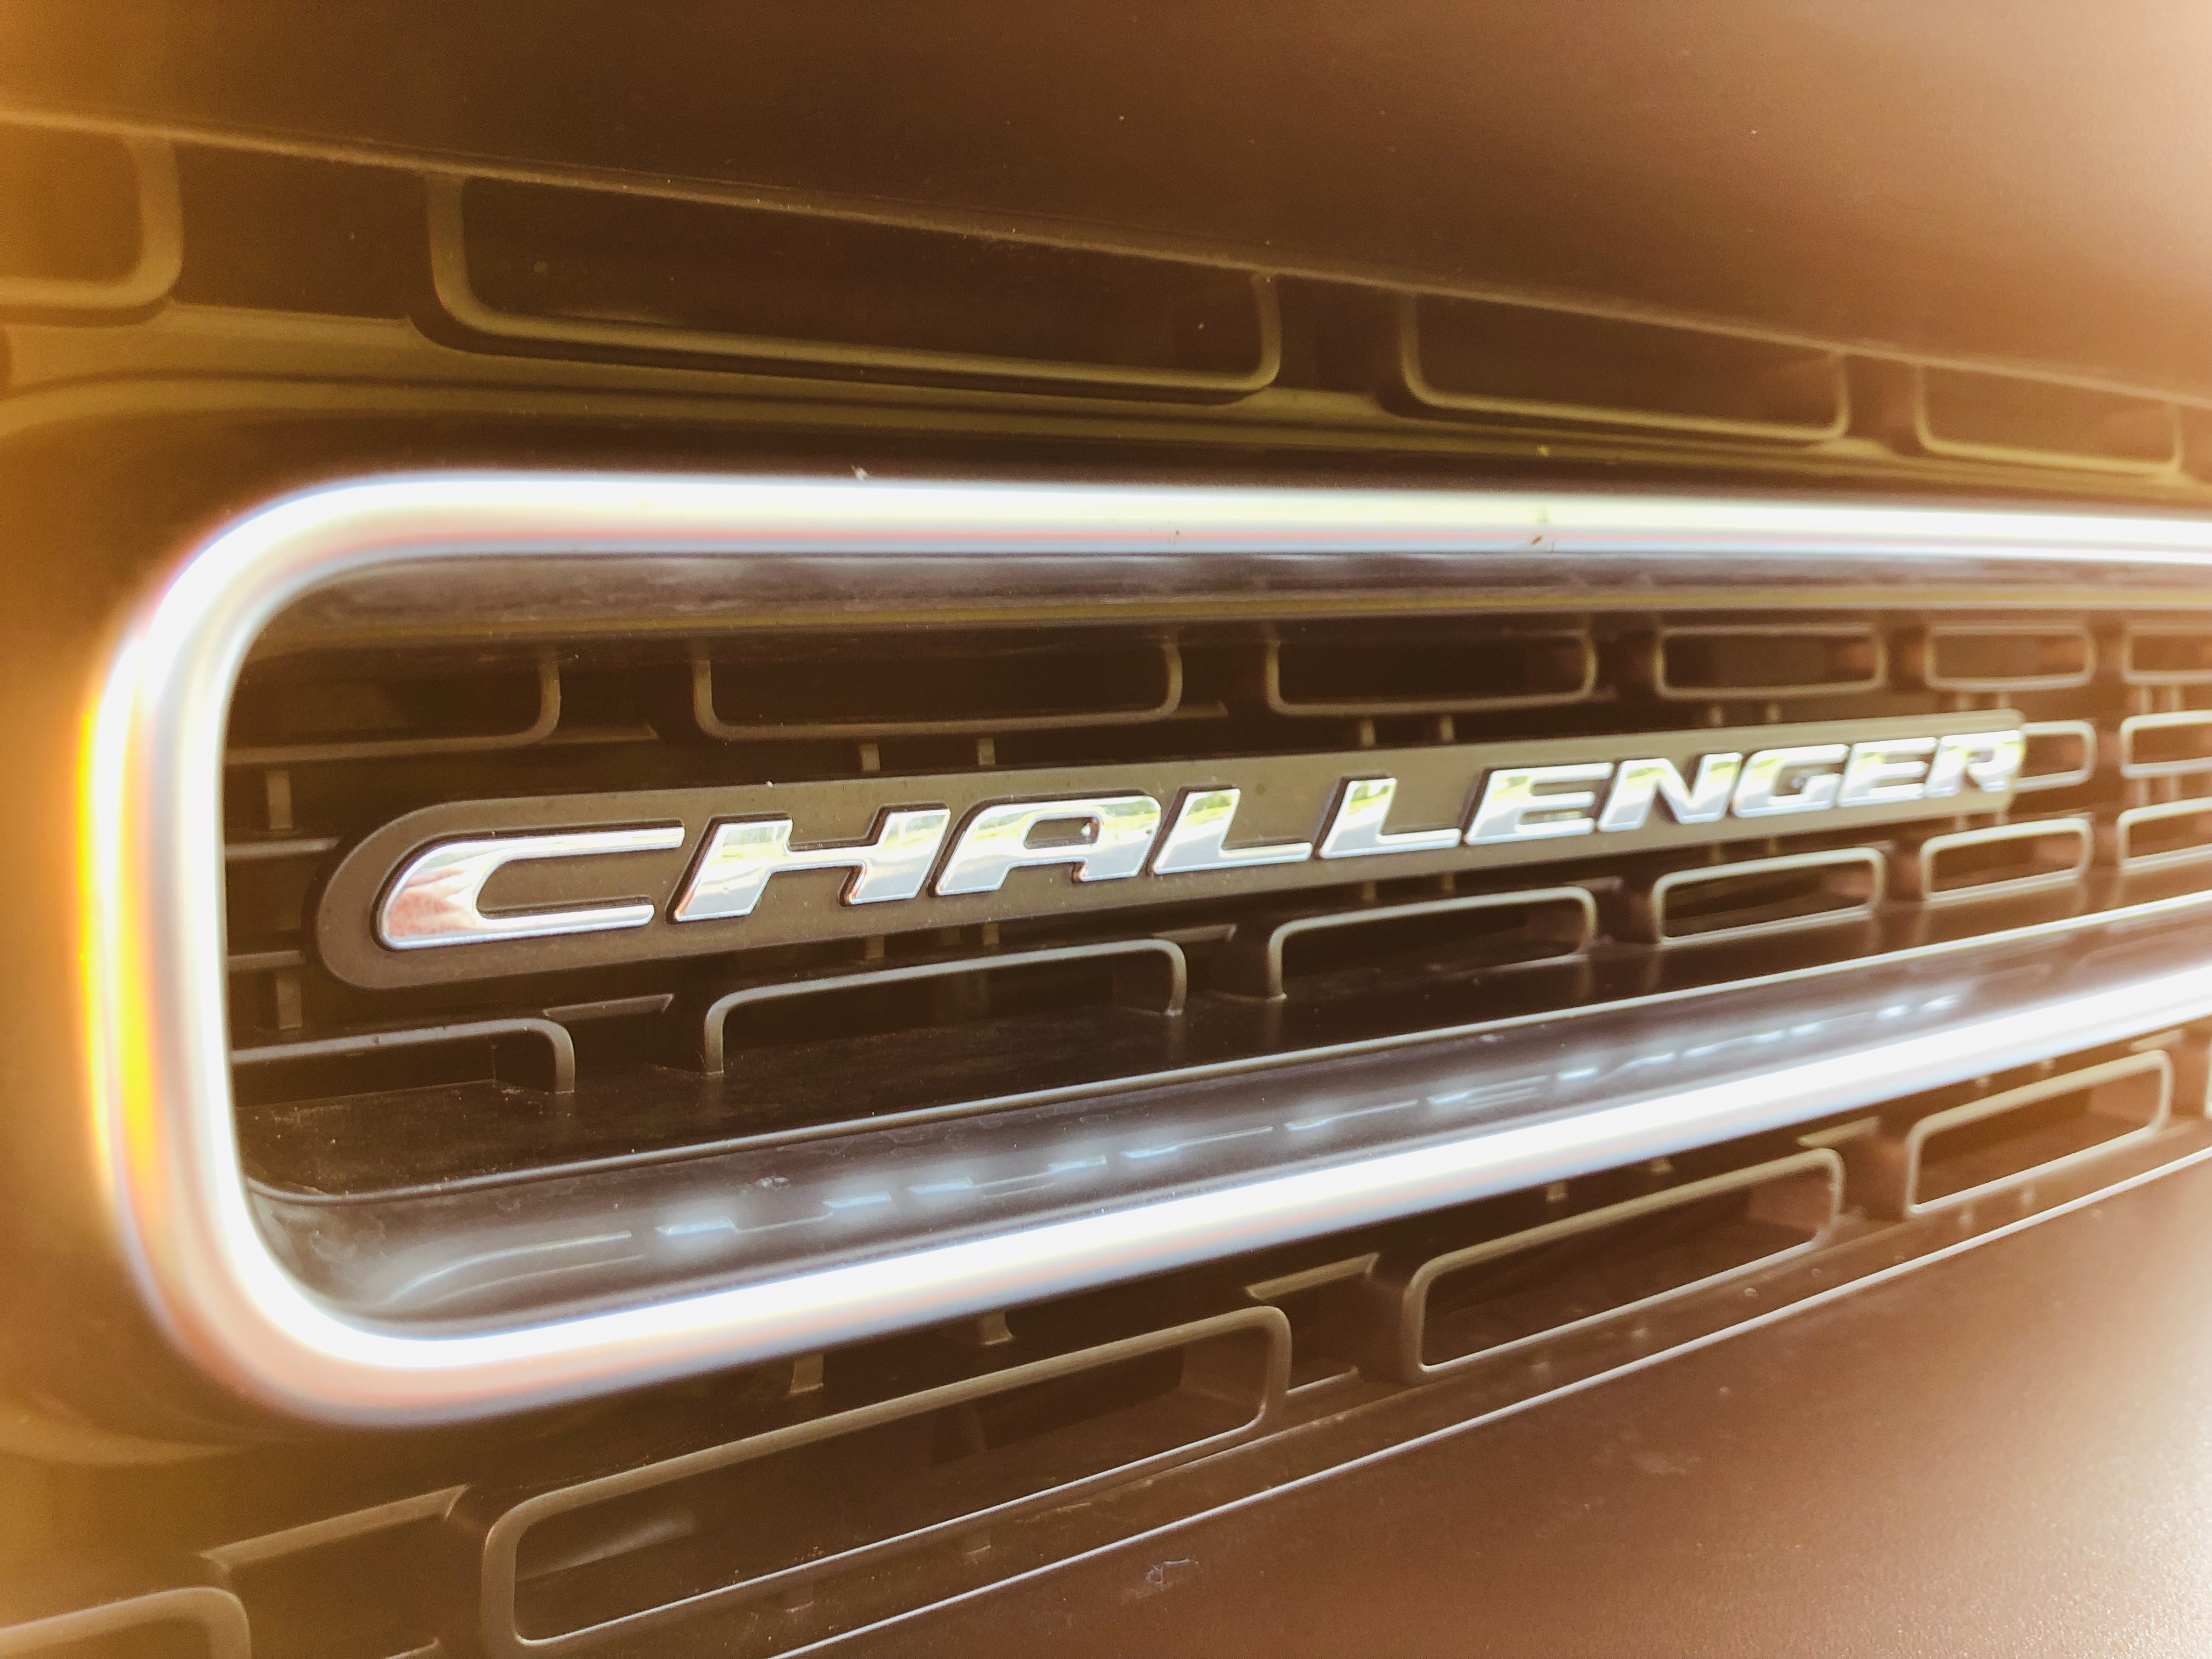 a close up of the challenger plate on the front of a 2018 dodge challenger. The photograph is softened by a yellow-orange lens flare